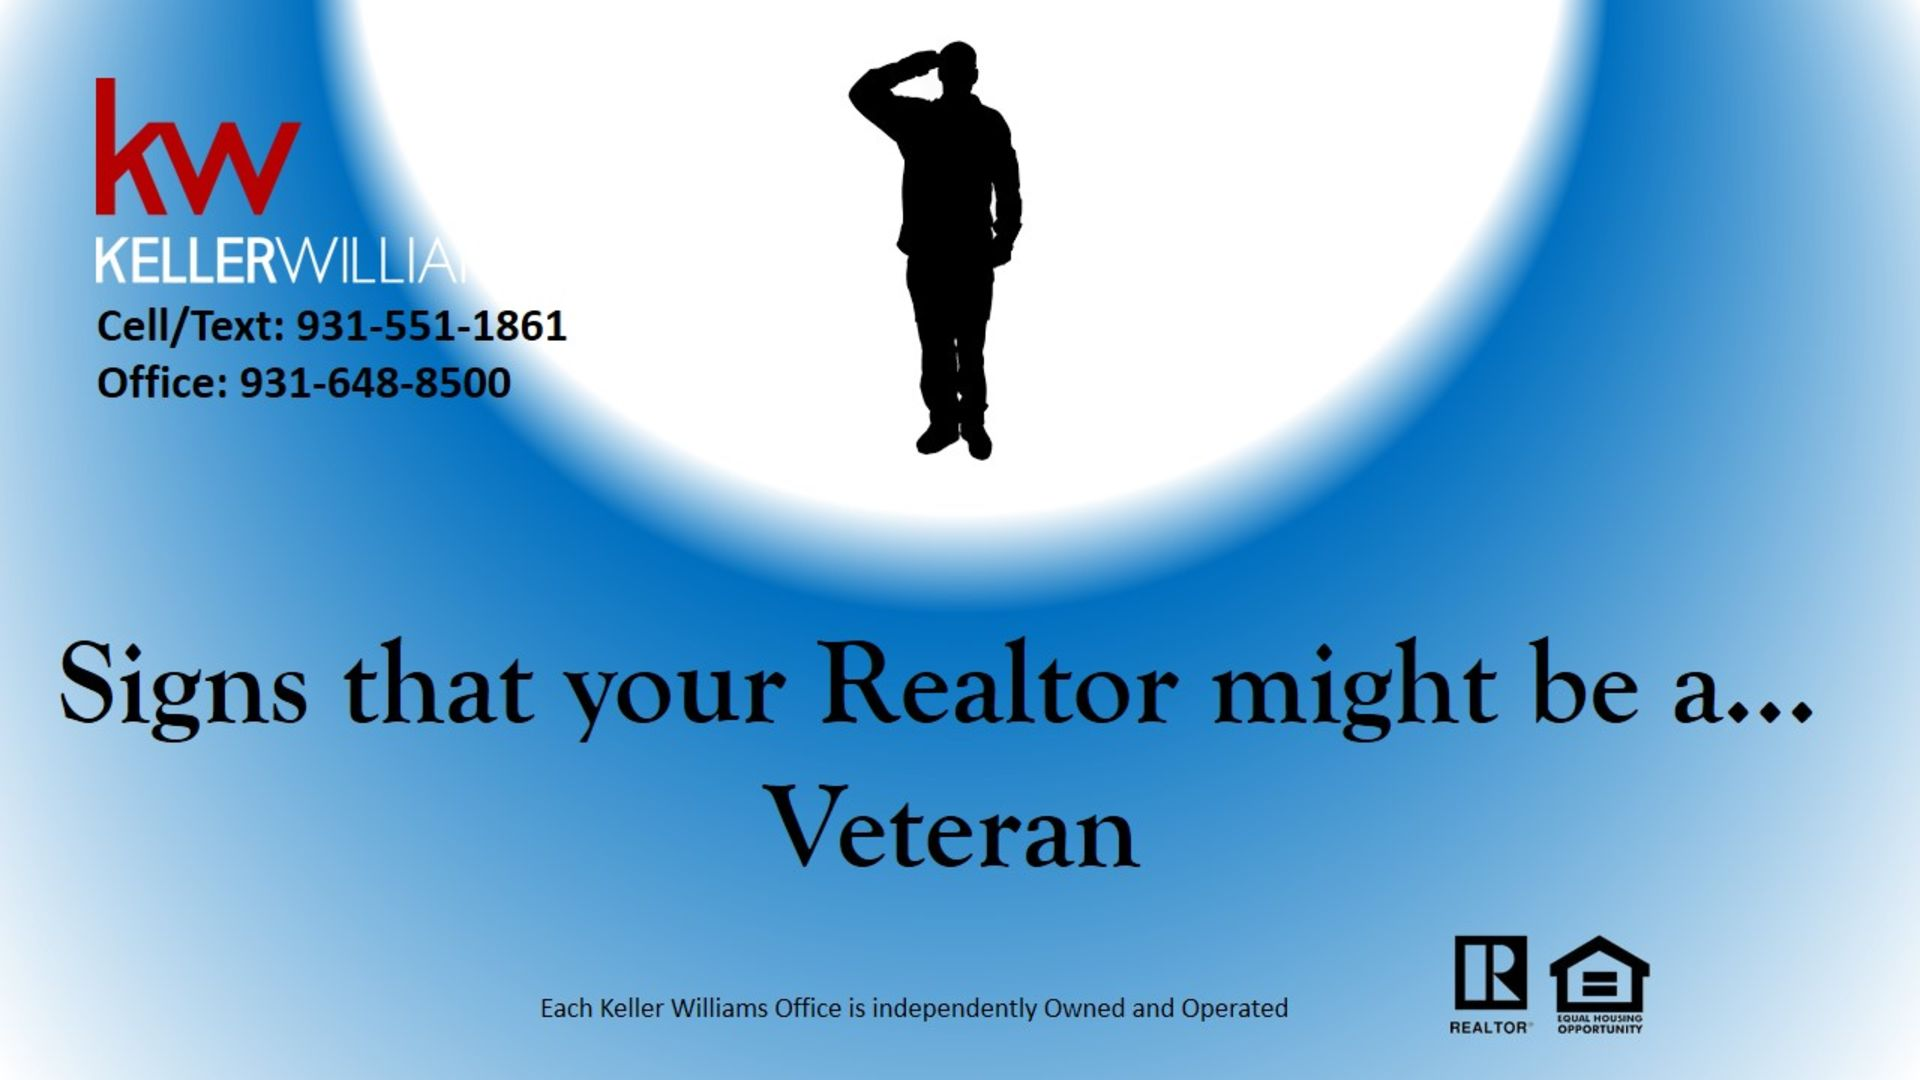 Signs that your Realtor might be a Veteran